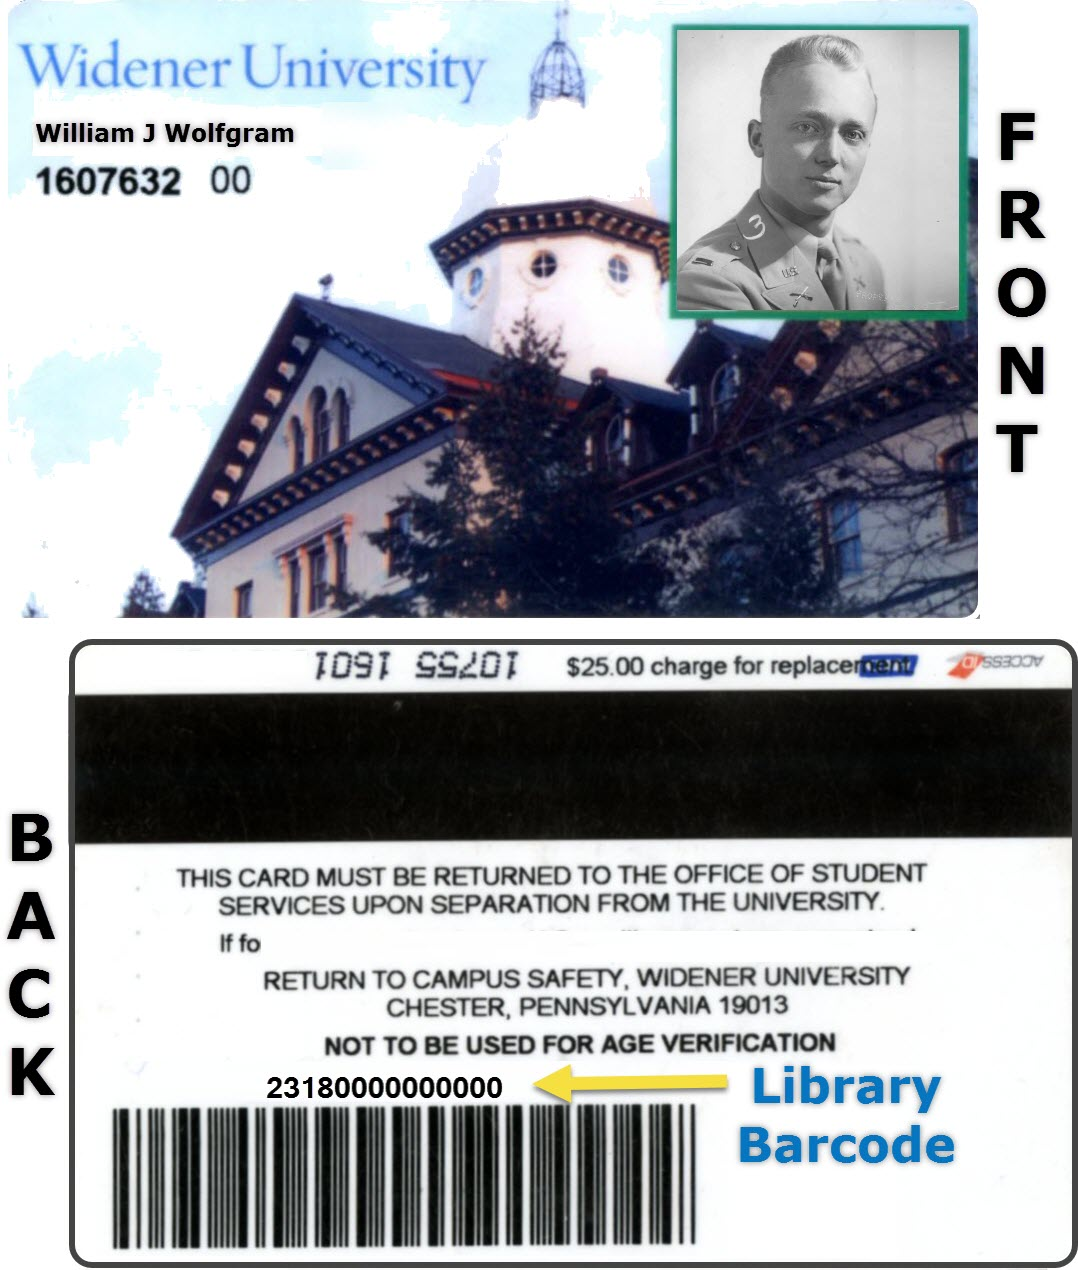 sample Widener ID Card showing the 14 digit barcode on the back of the card.